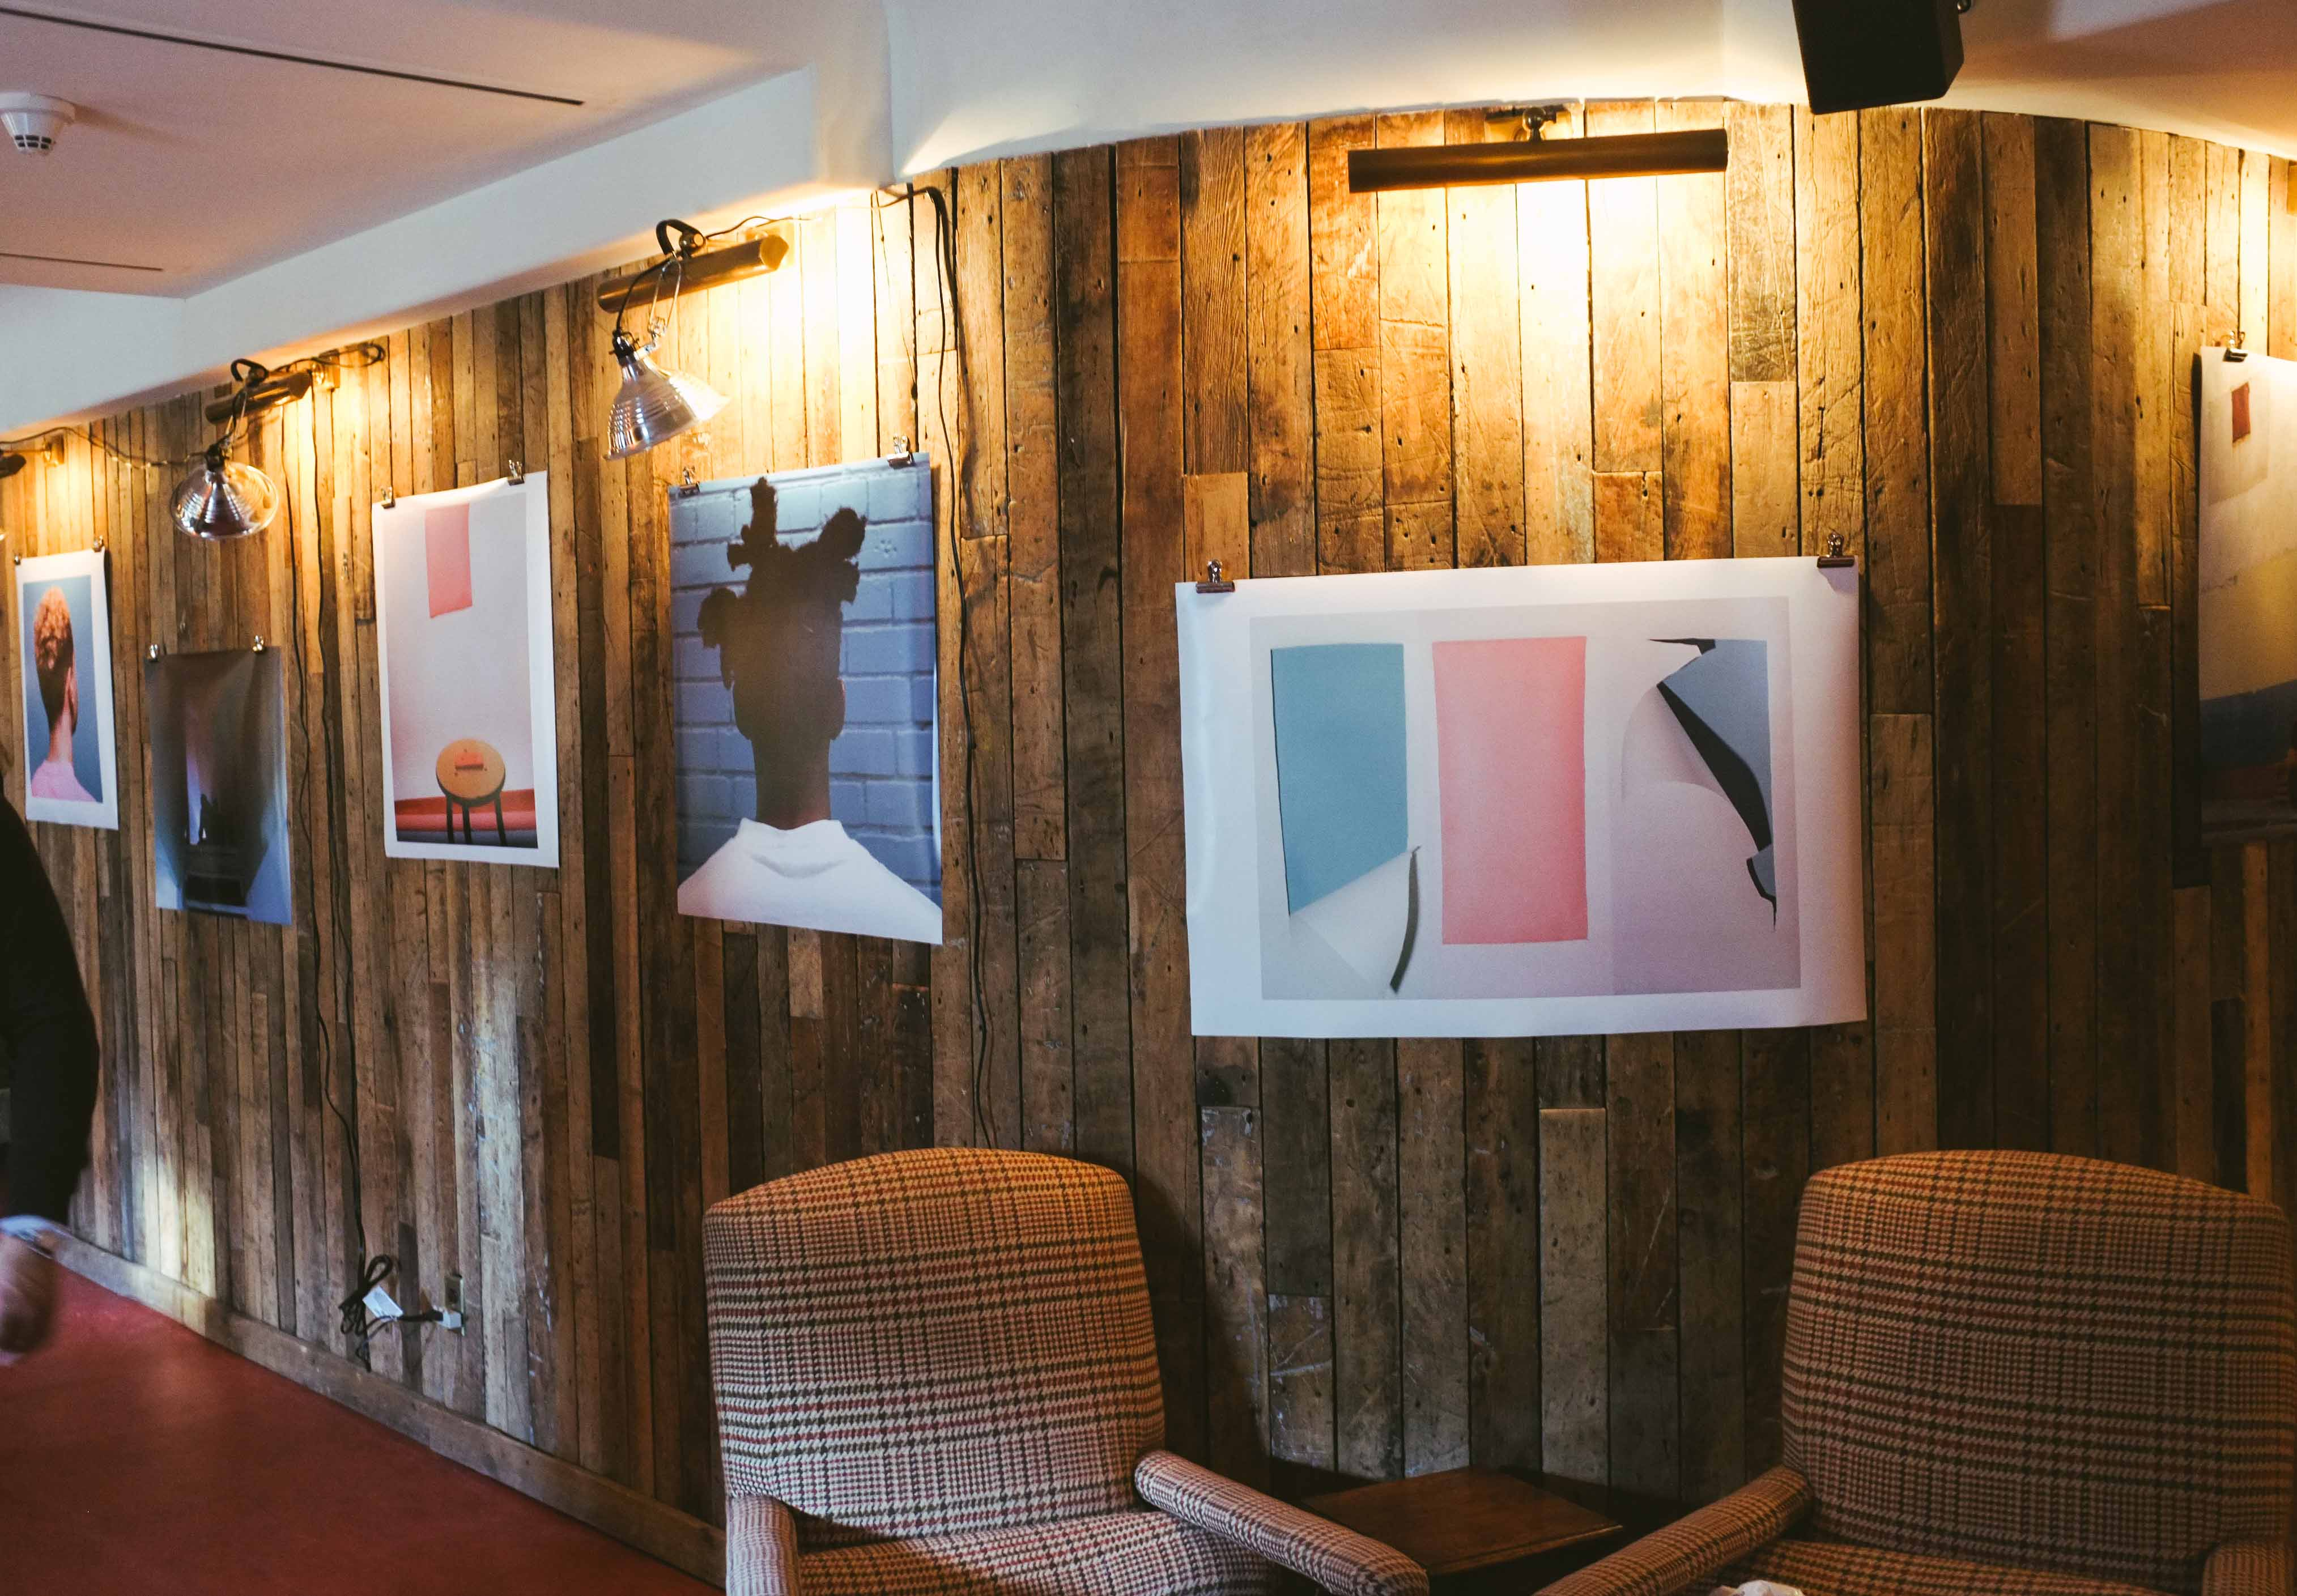 A glimpse at one of NUDE's collaborative shows with the Soho House Toronto.